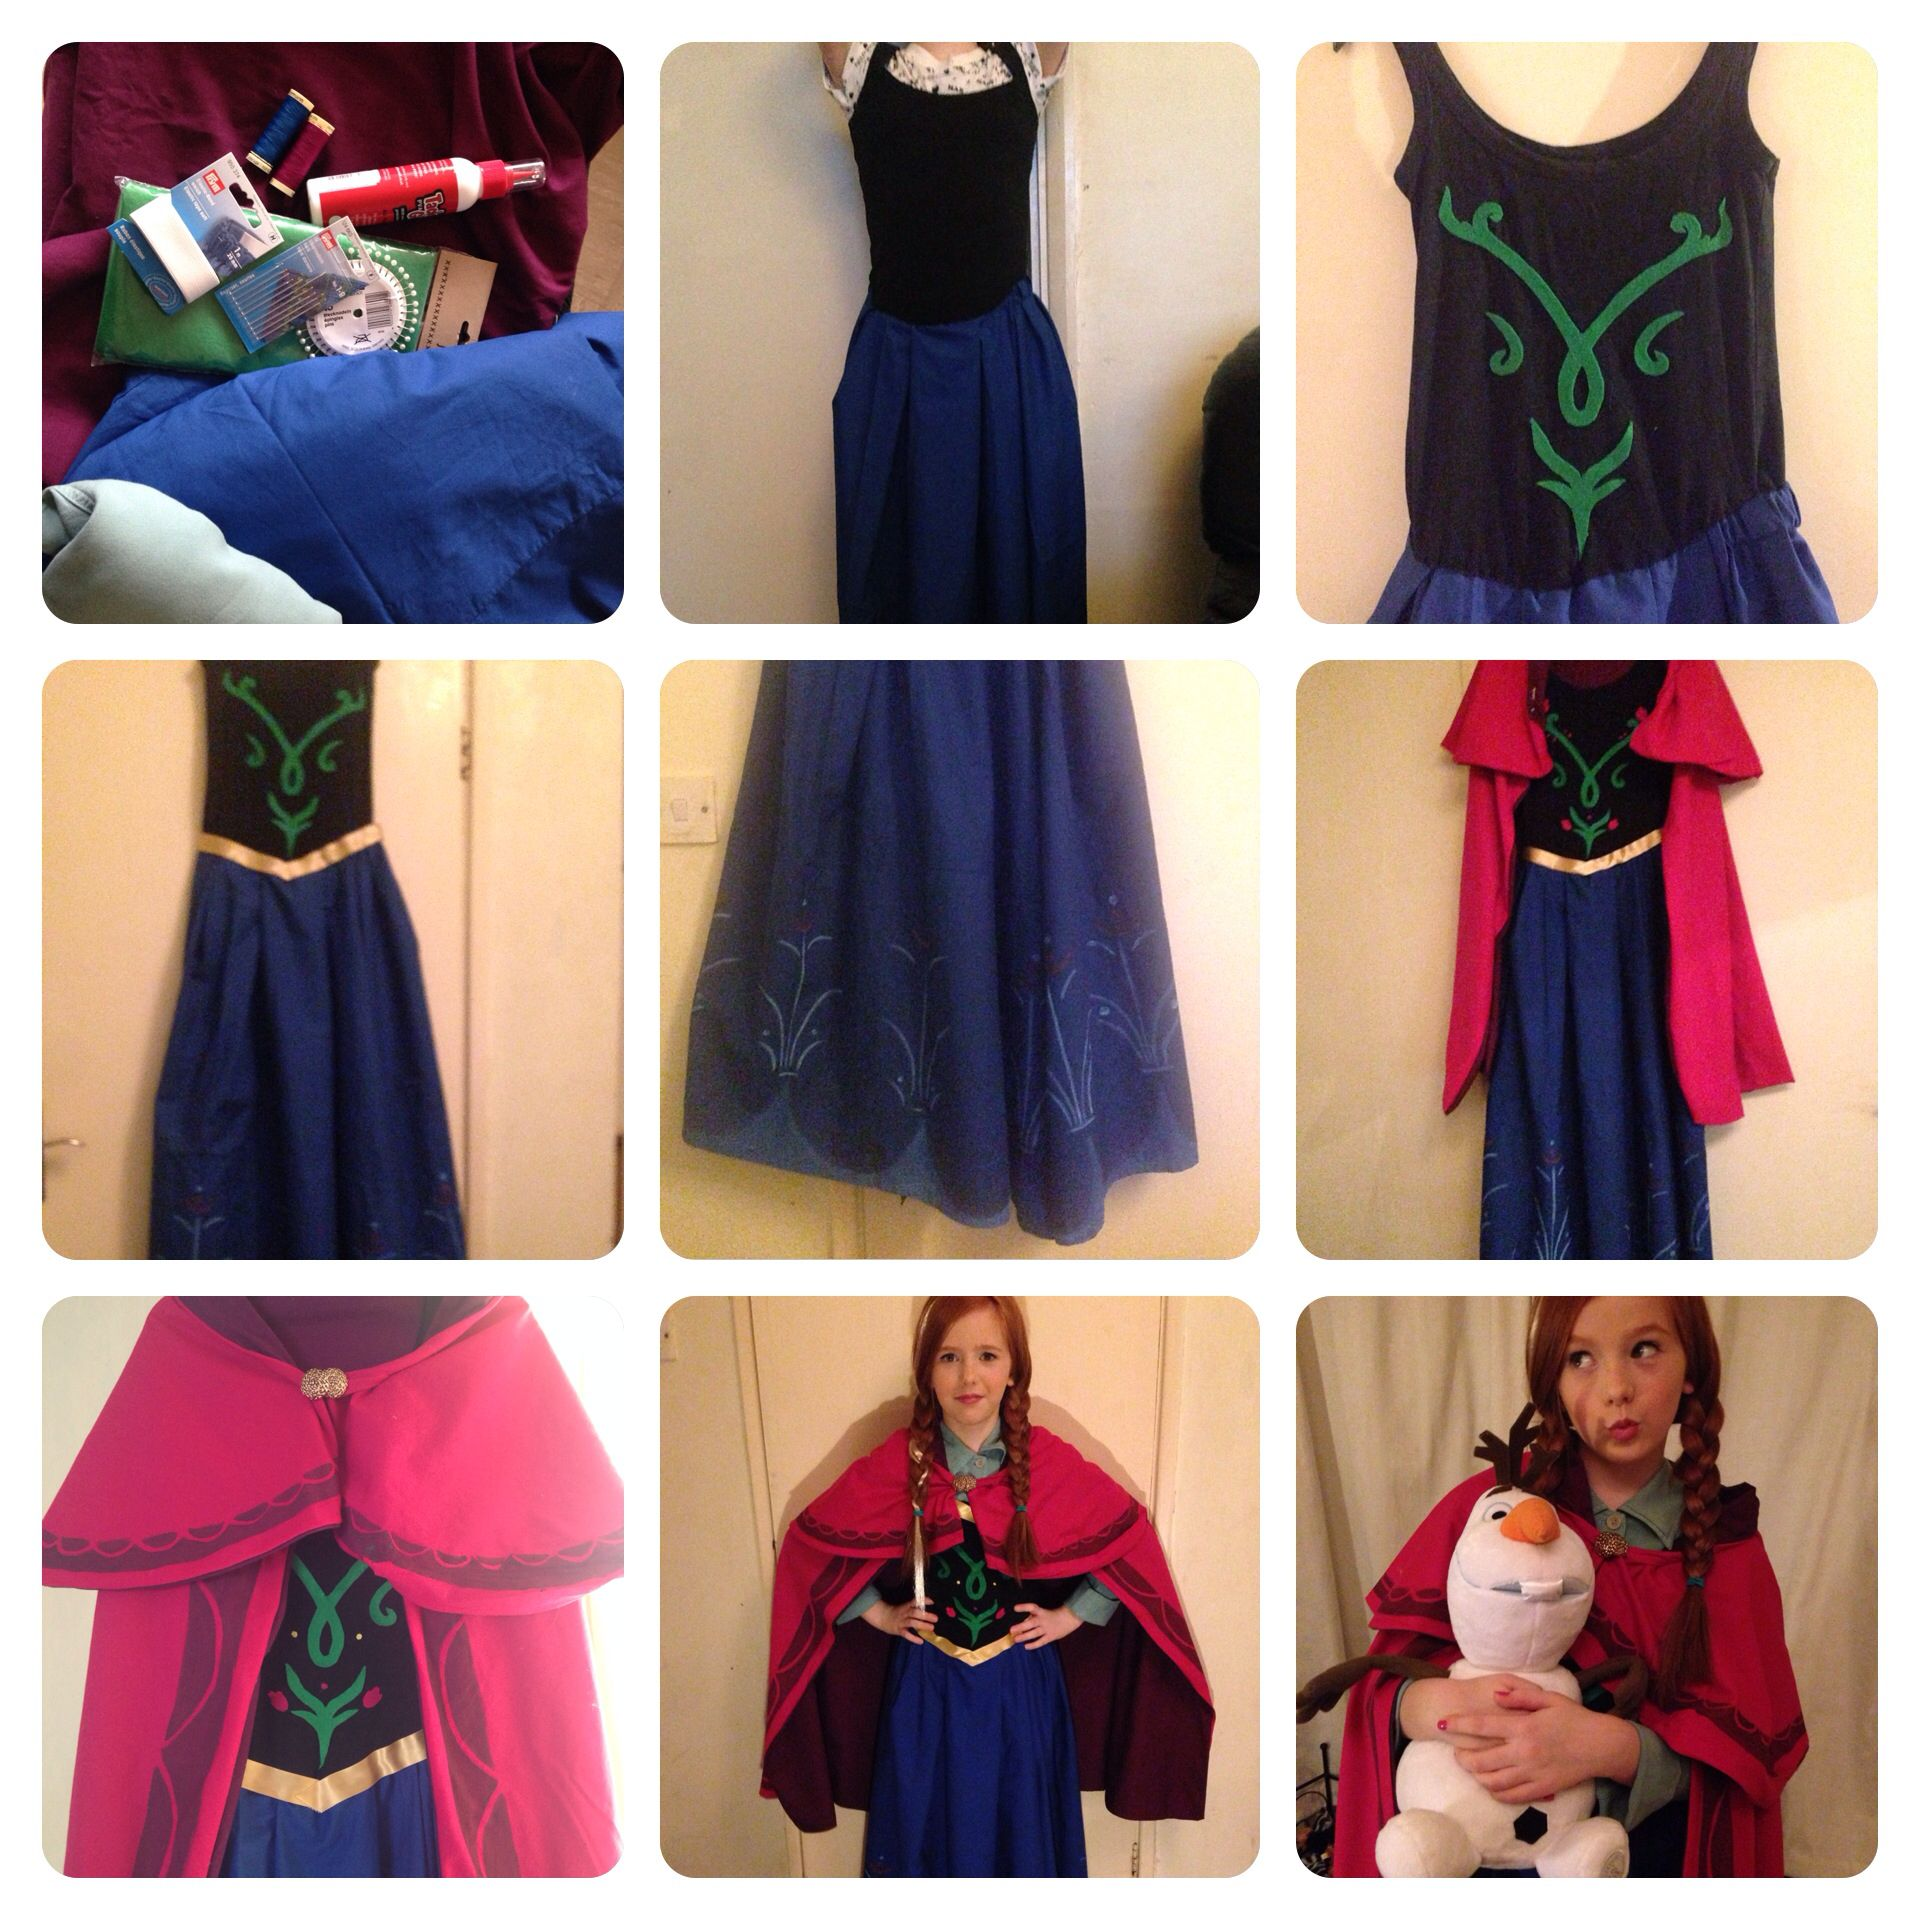 Hand made Frozen costume #Anna #Olaf  sc 1 st  Pinterest & Hand made Frozen costume #Anna #Olaf | Frozen costumes | Pinterest ...